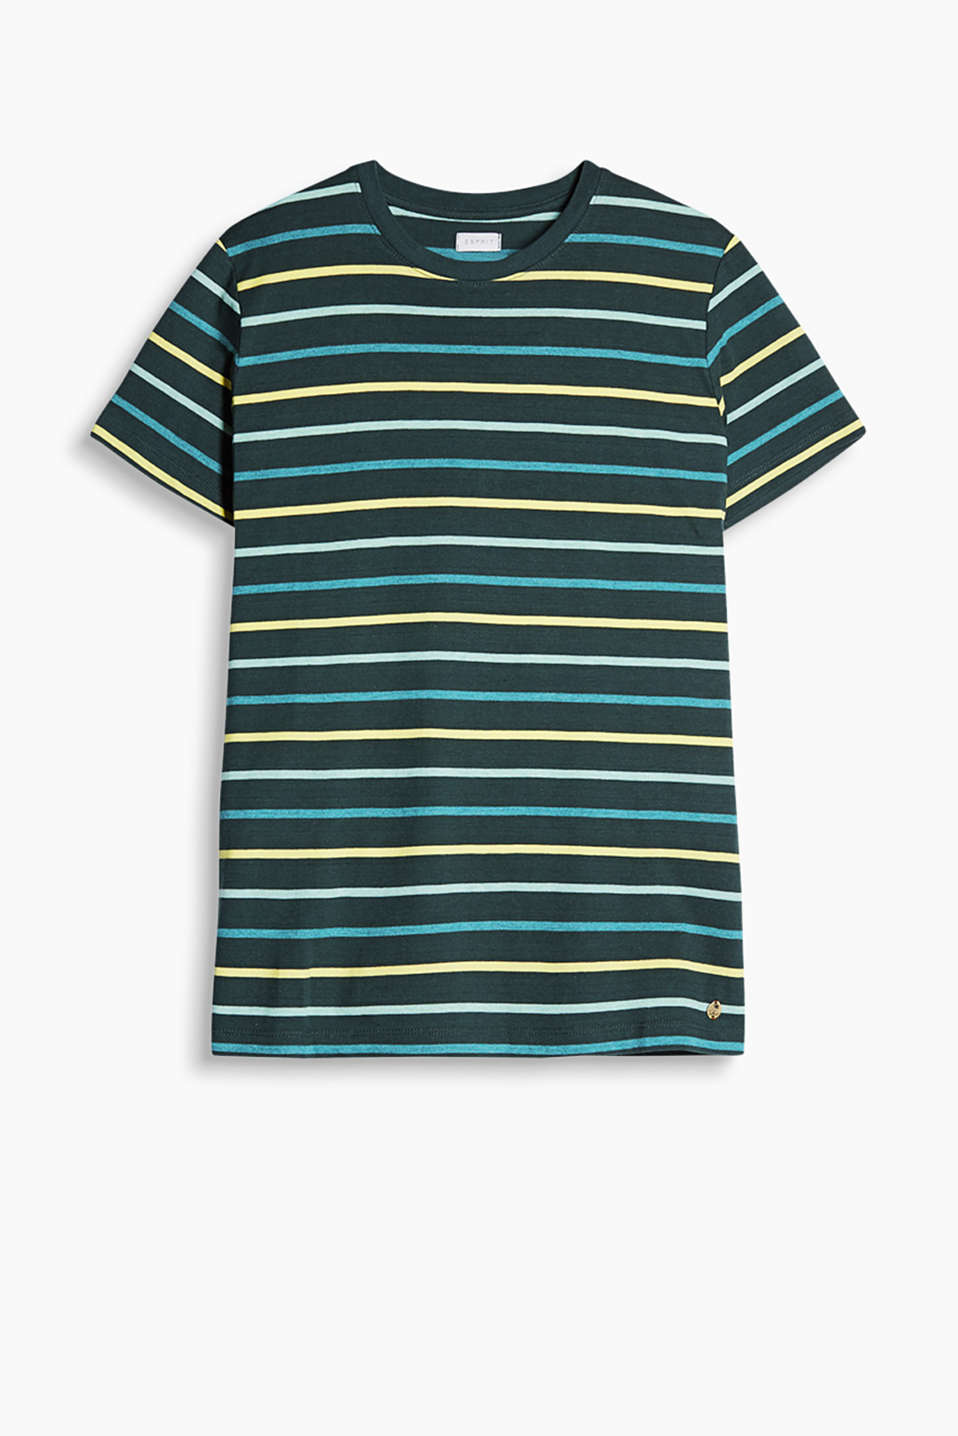 Colourfully striped T-shirt with a ribbed round neck trim made of soft blended cotton